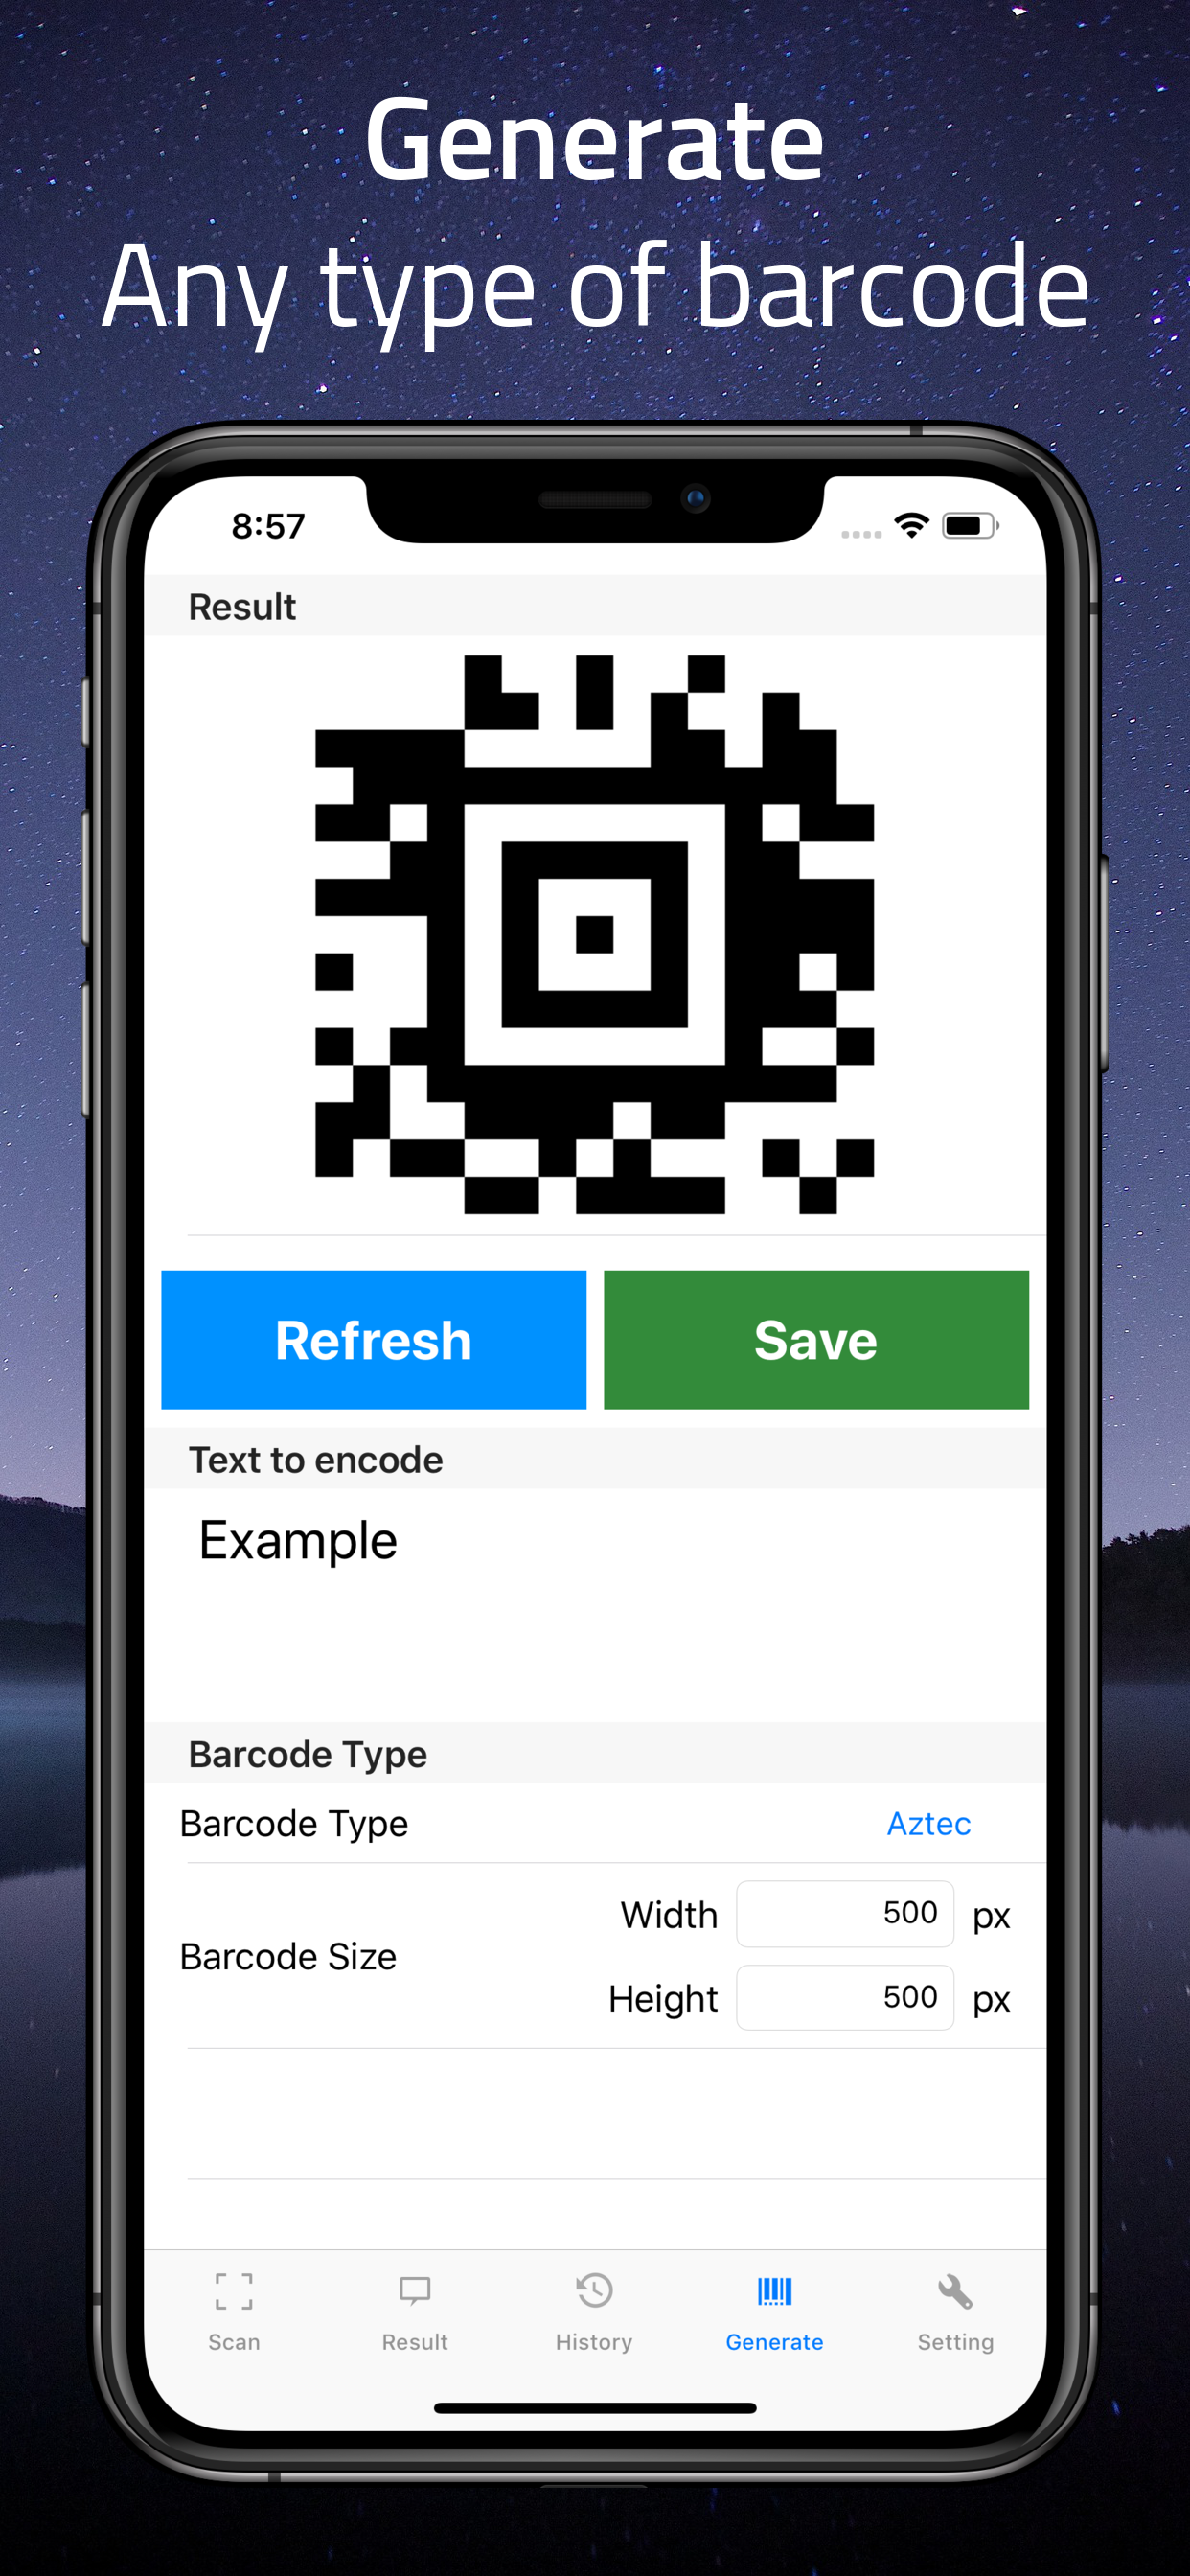 iPhone Xs Max-02Barcode - Generate_framed.png